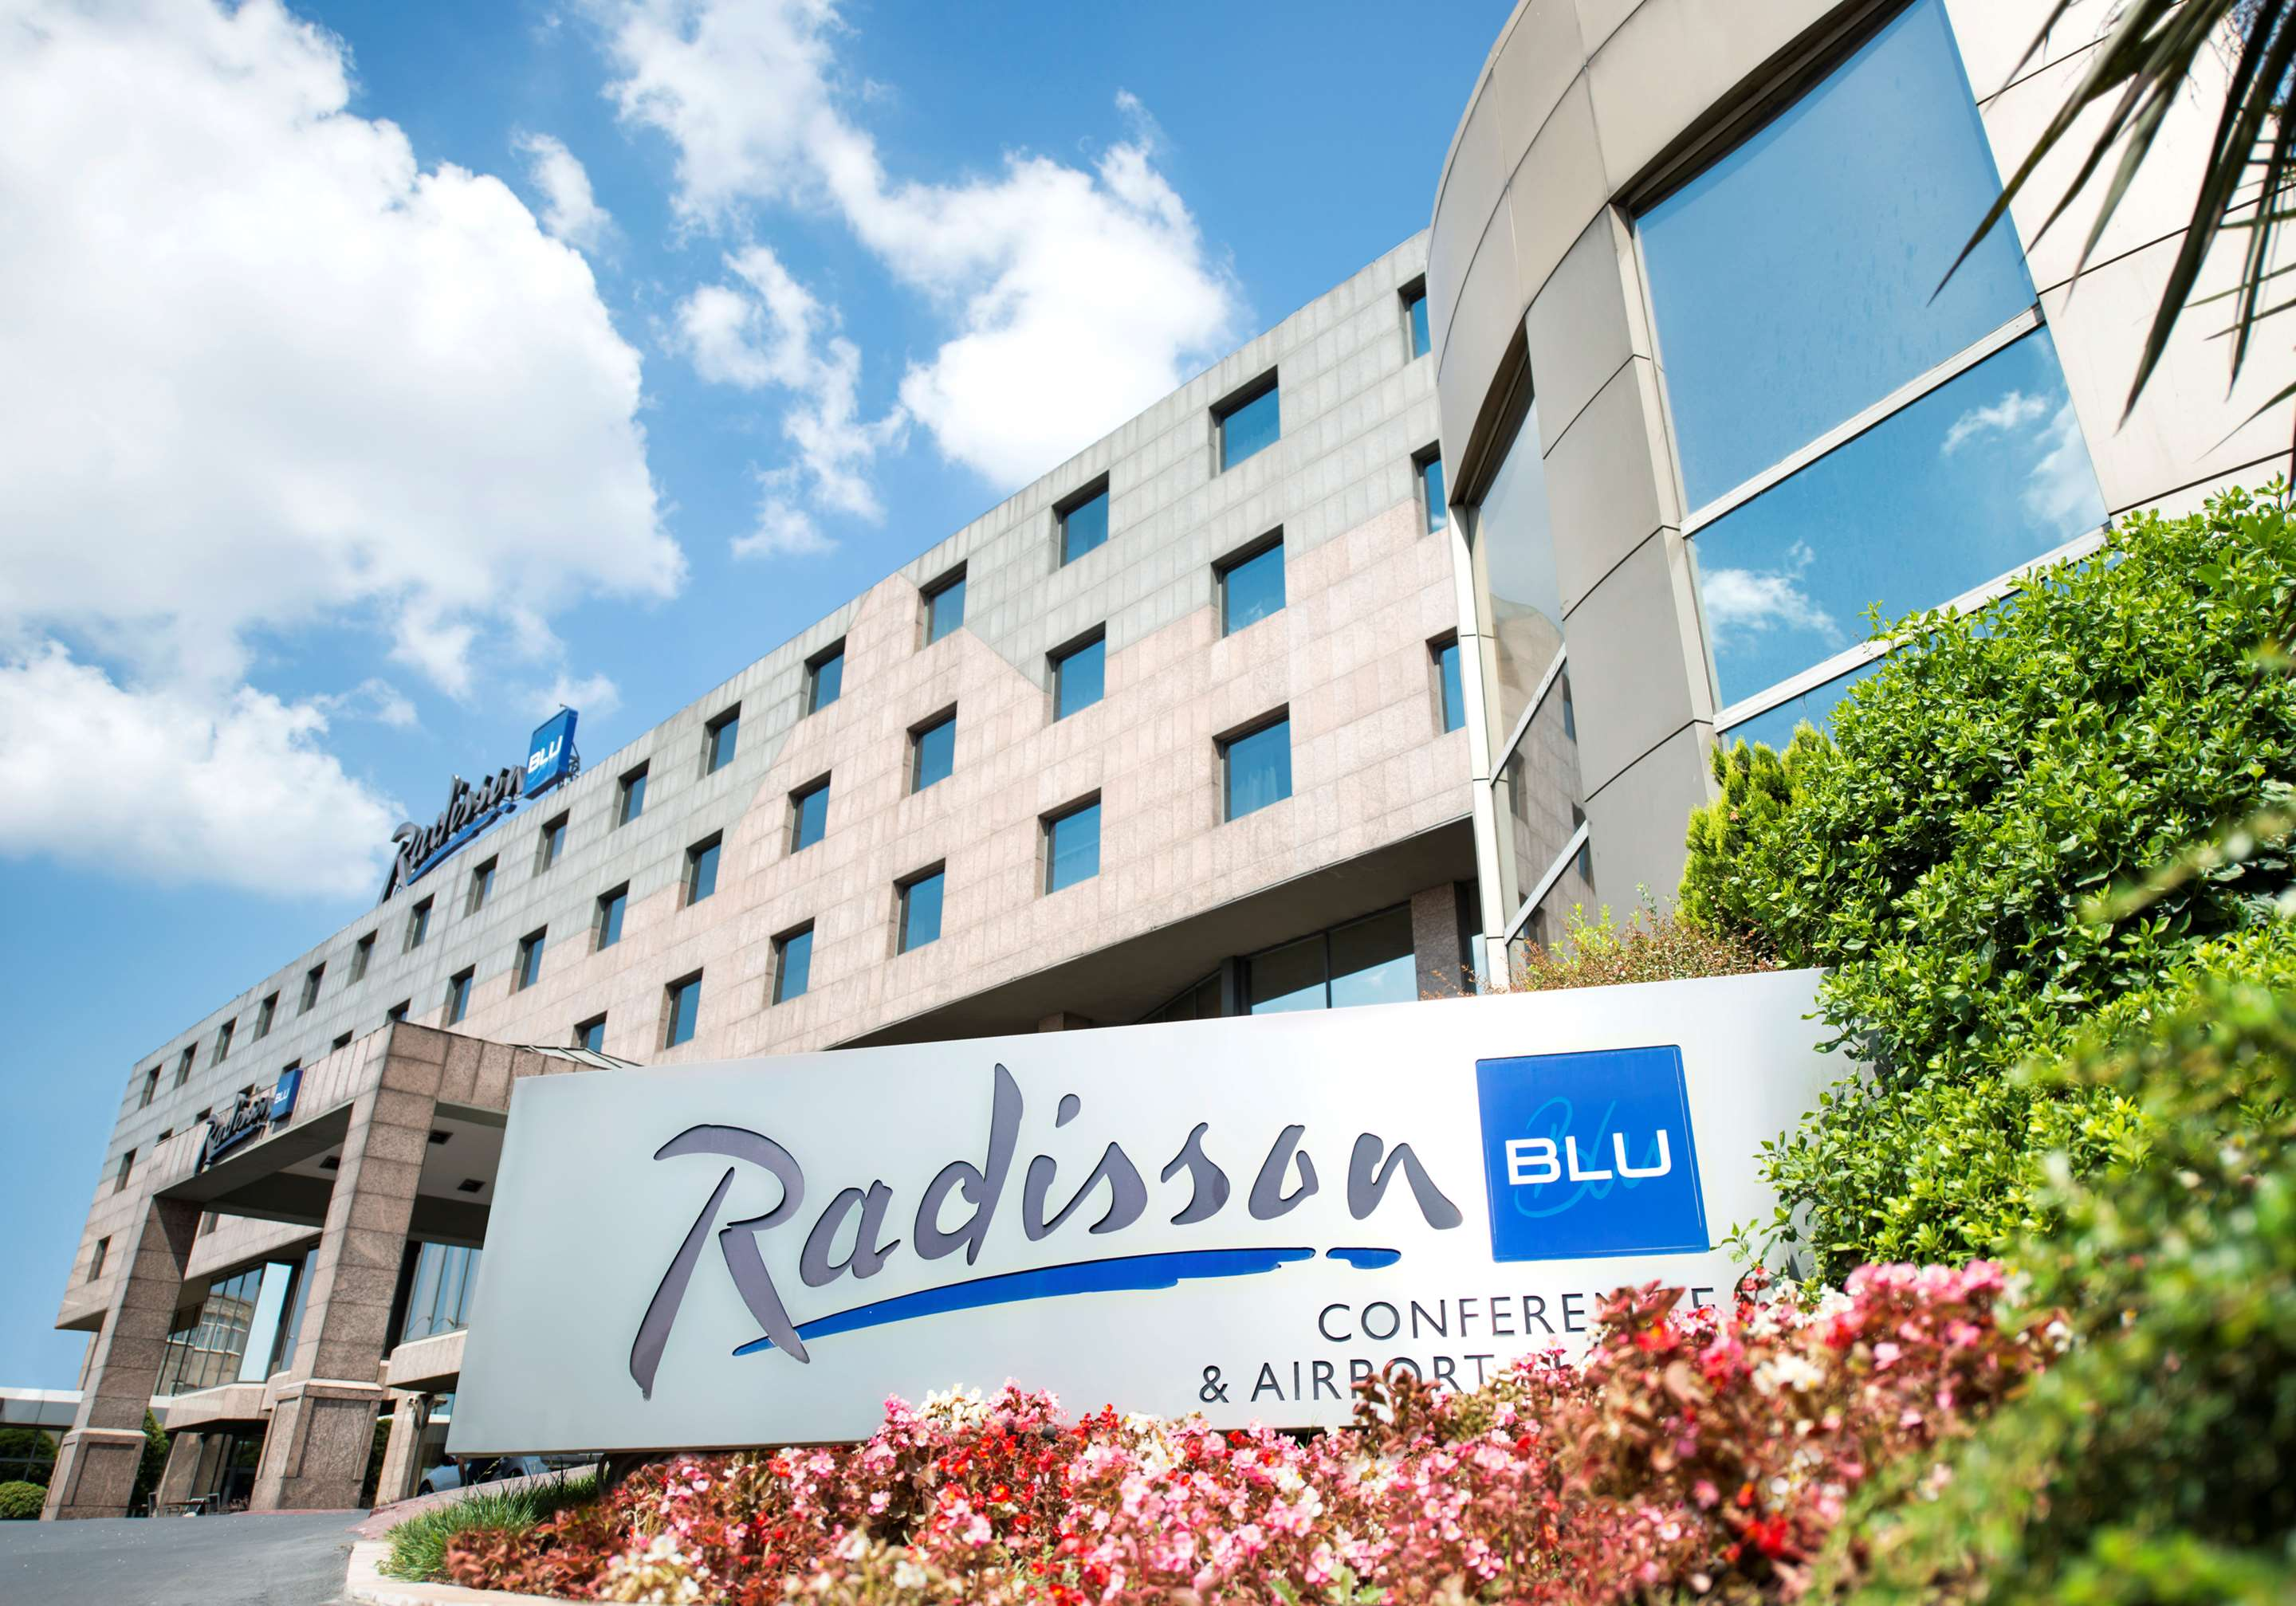 Istanbul Airport Hotel Radisson Blu Conference Airport Hotel